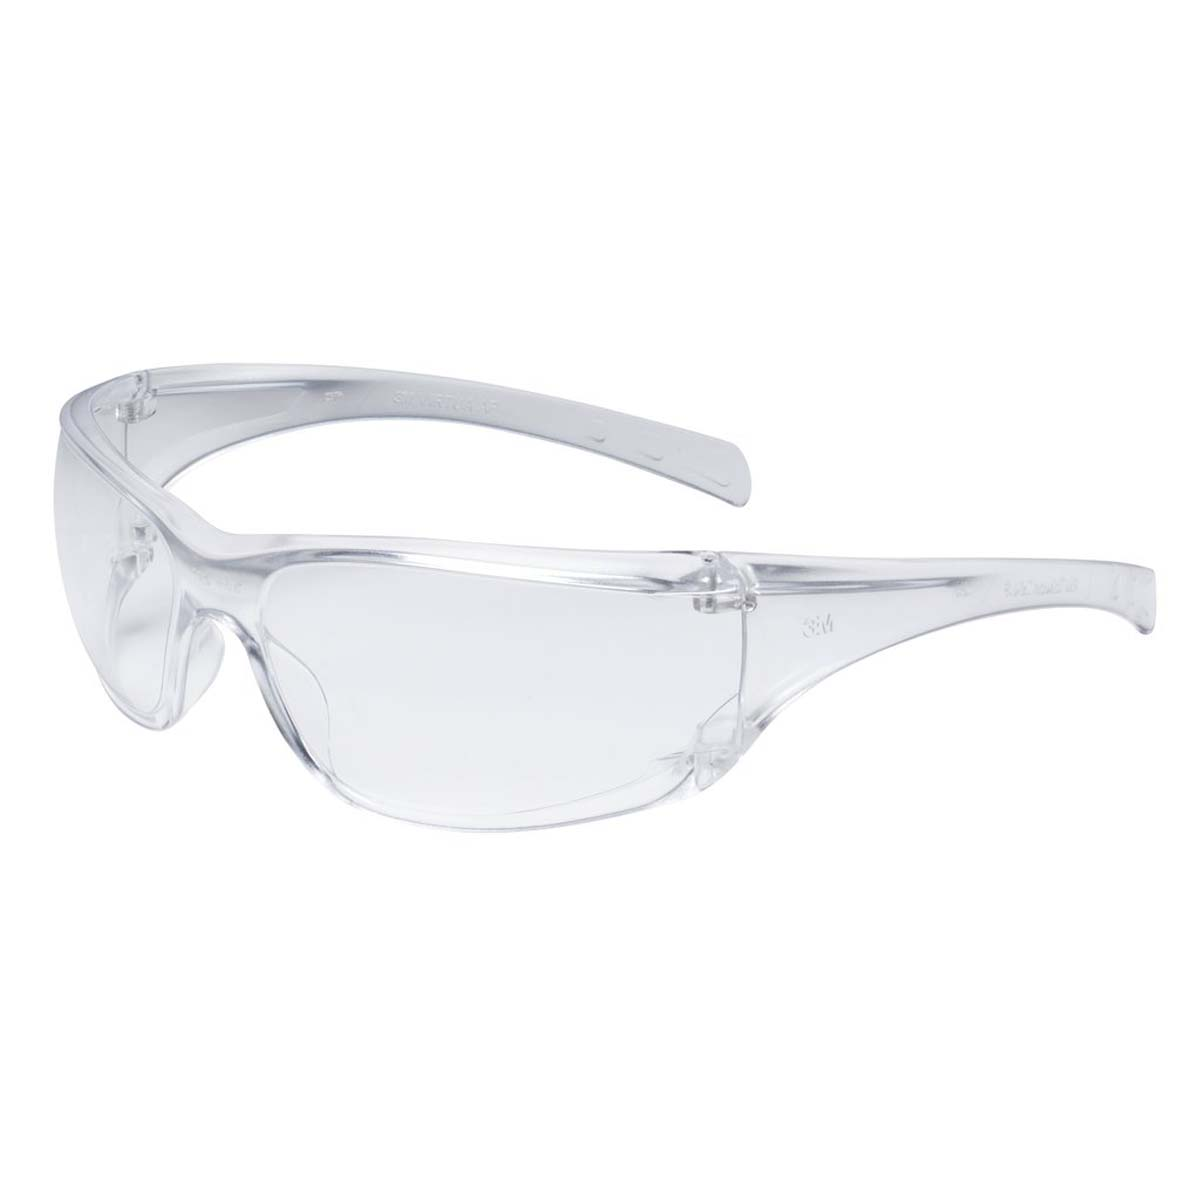 3M Virtua AP Protective Eyewear 11819-00000-20, Clear Hard Coat Lens,